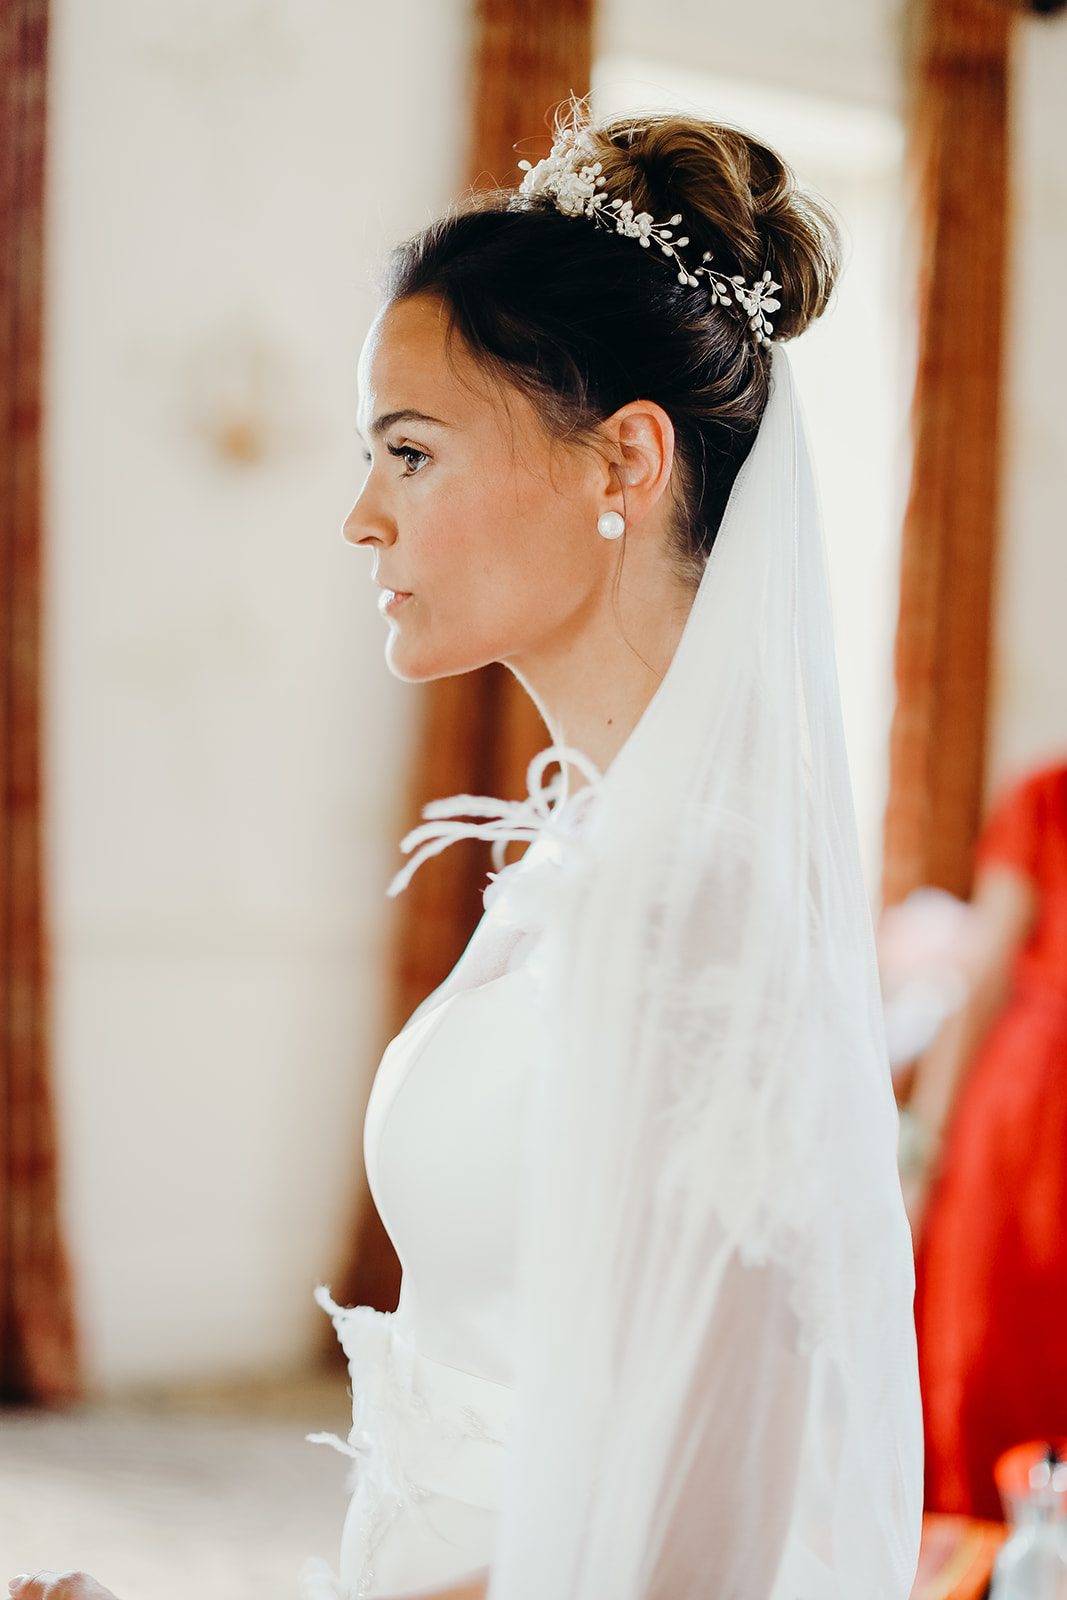 high bun wedding hairstyle natural dewy bridal makeup London Surrey Berkshire